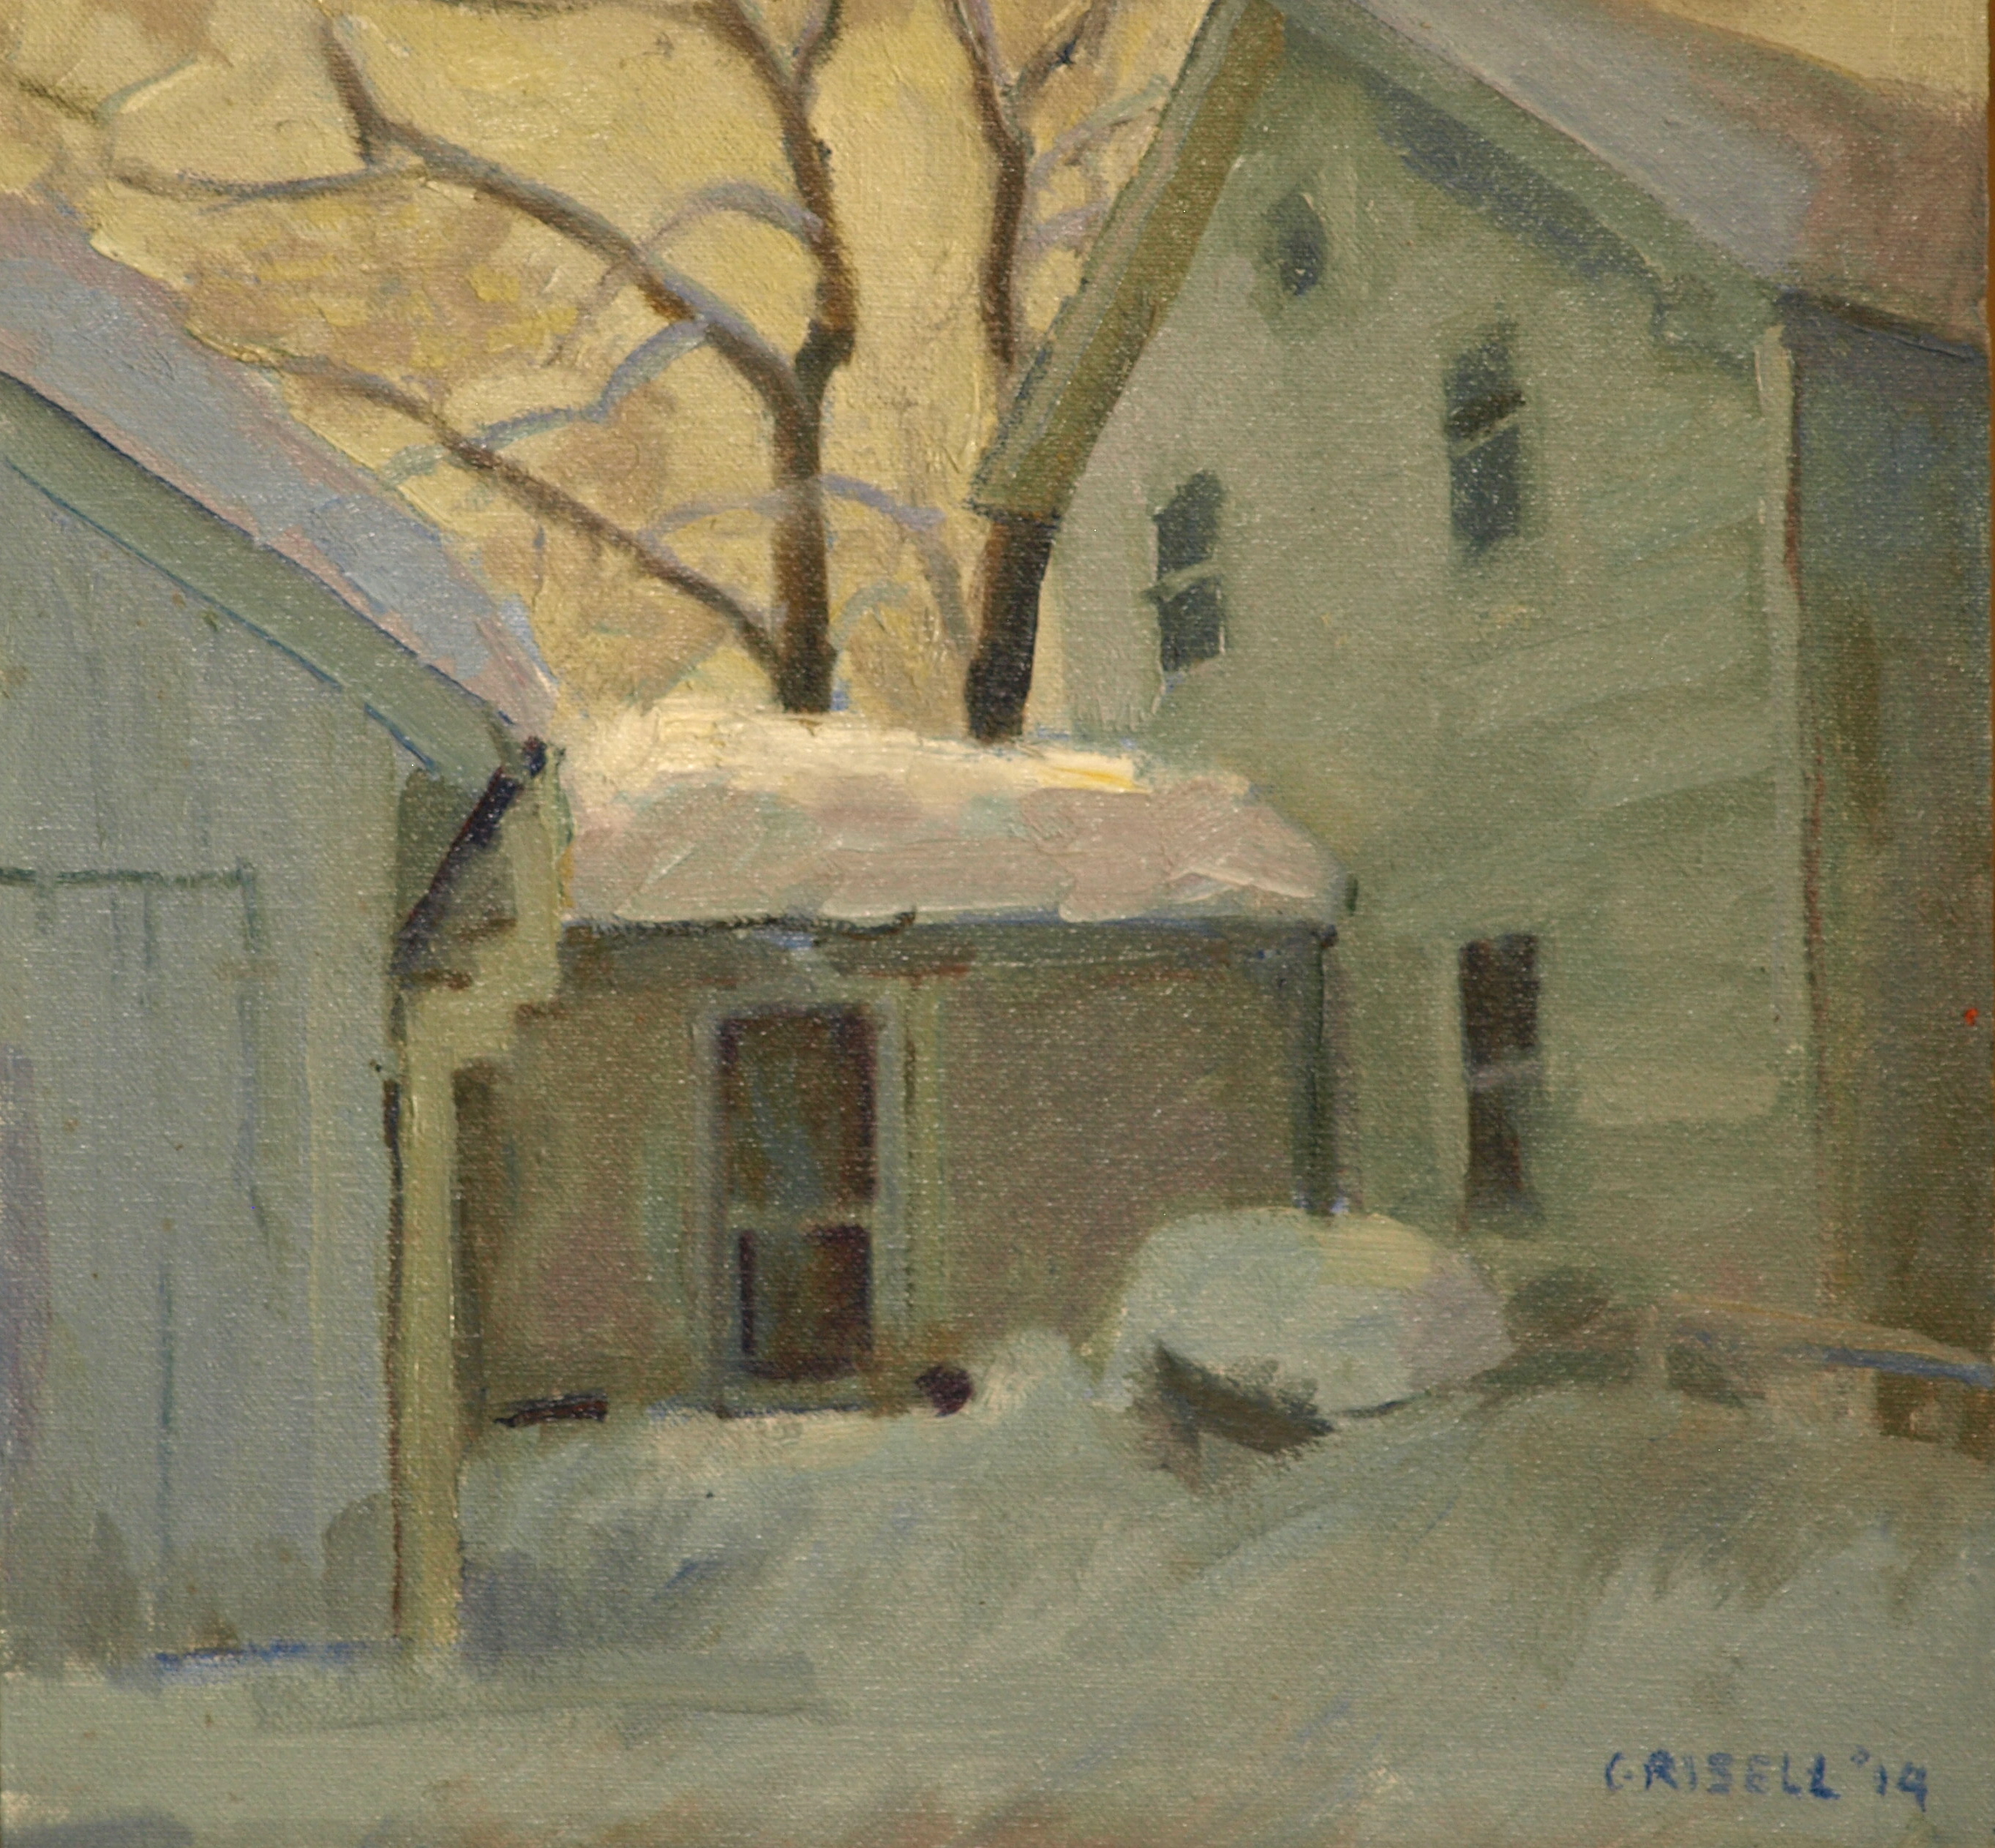 Deep Snow, Oil on Canvas on Panel, 12 x 12 Inches, by Susan Grisell, $250